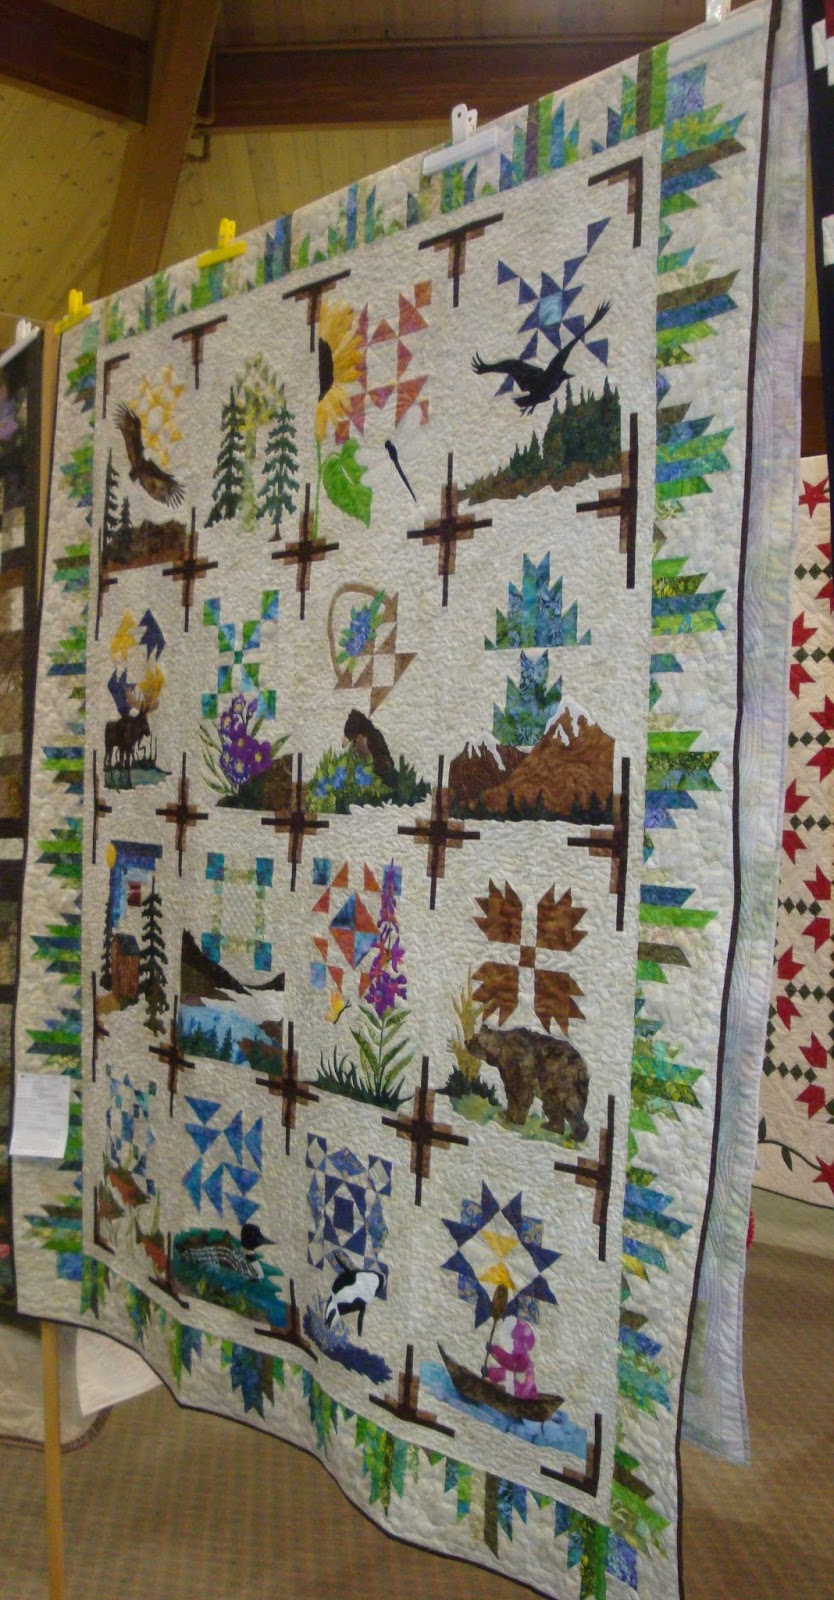 Fabric Therapy Sauder Village Quilt Show Part Ii